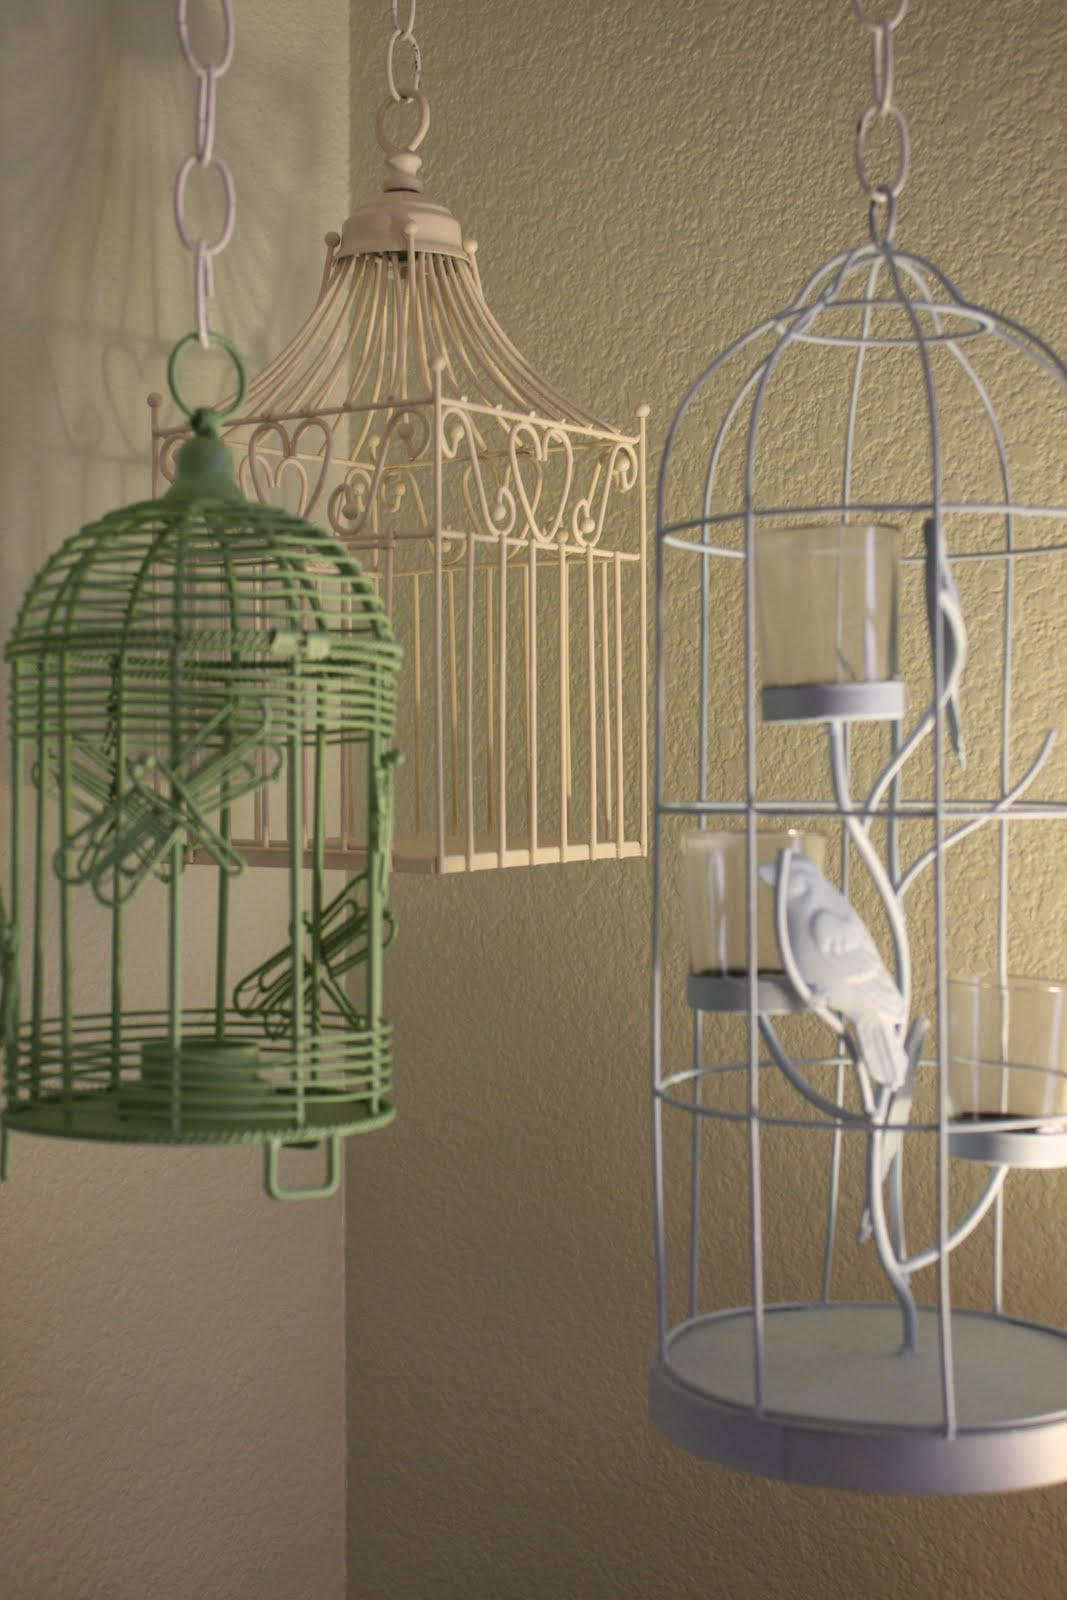 how to keep mice away from birdcage